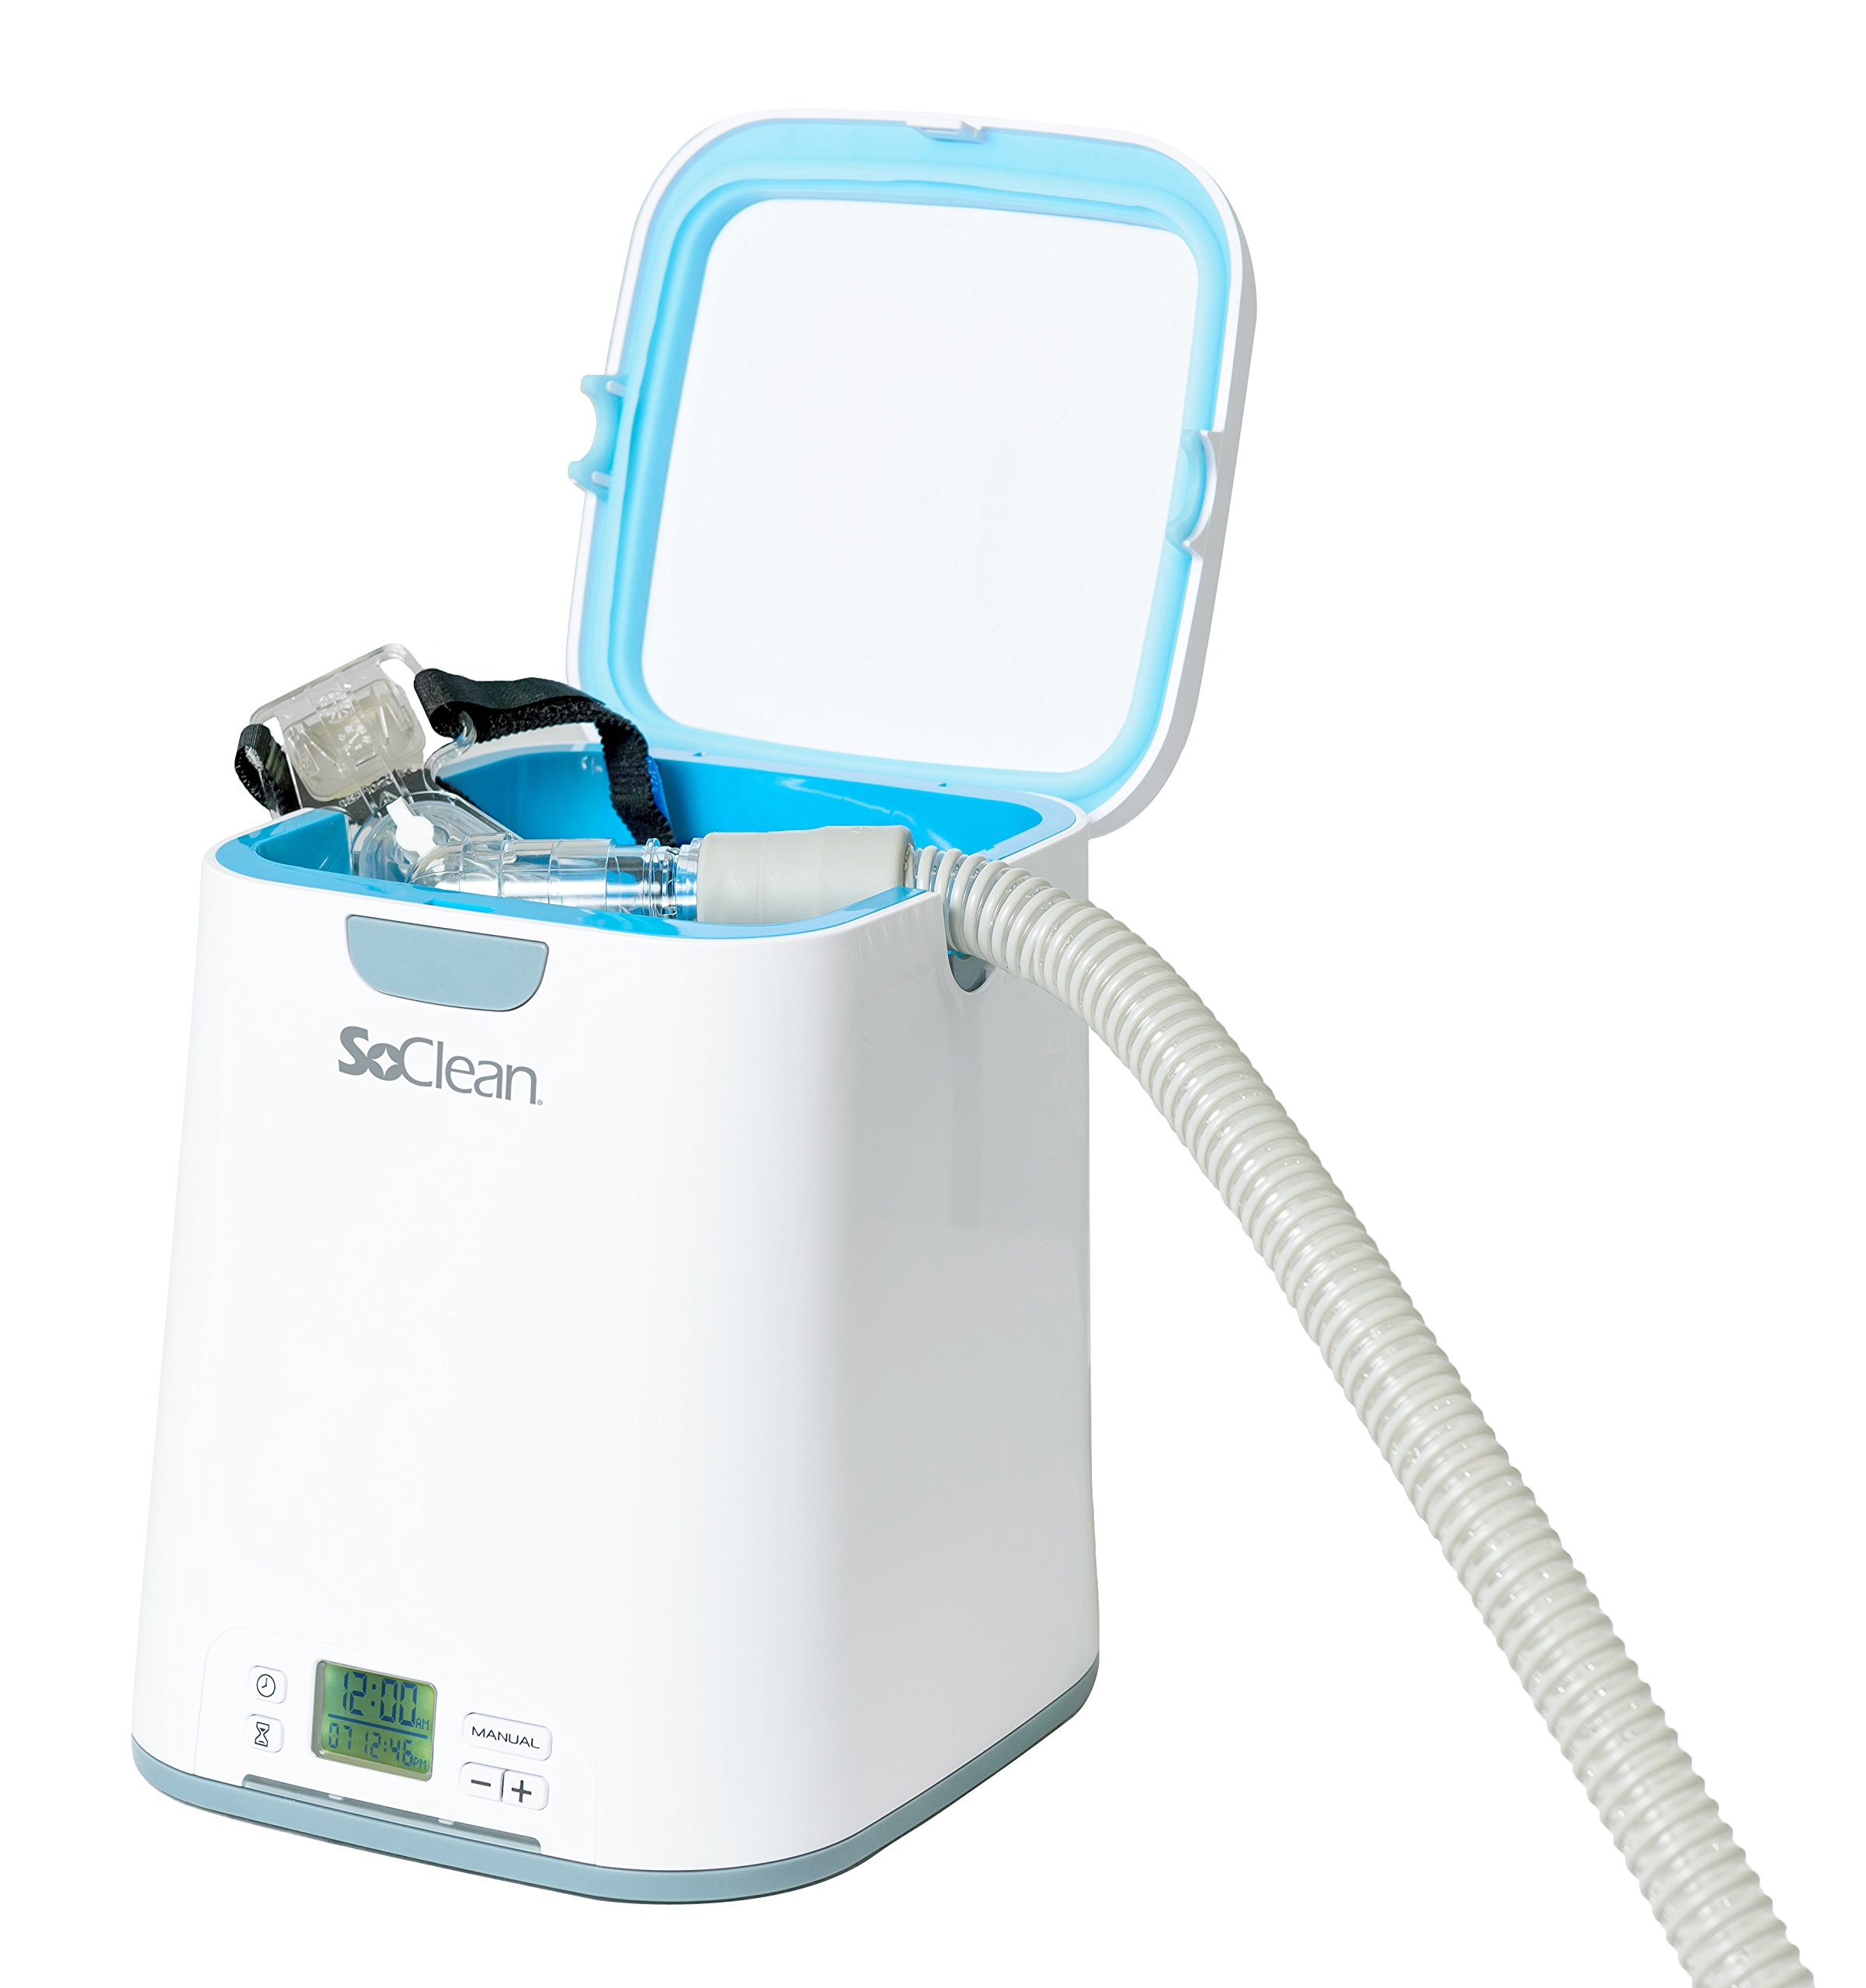 SoClean 2 CPAP Equipment Cleaner & Sanitizer Bundle with FREE Extra Cartridge Filter Kit